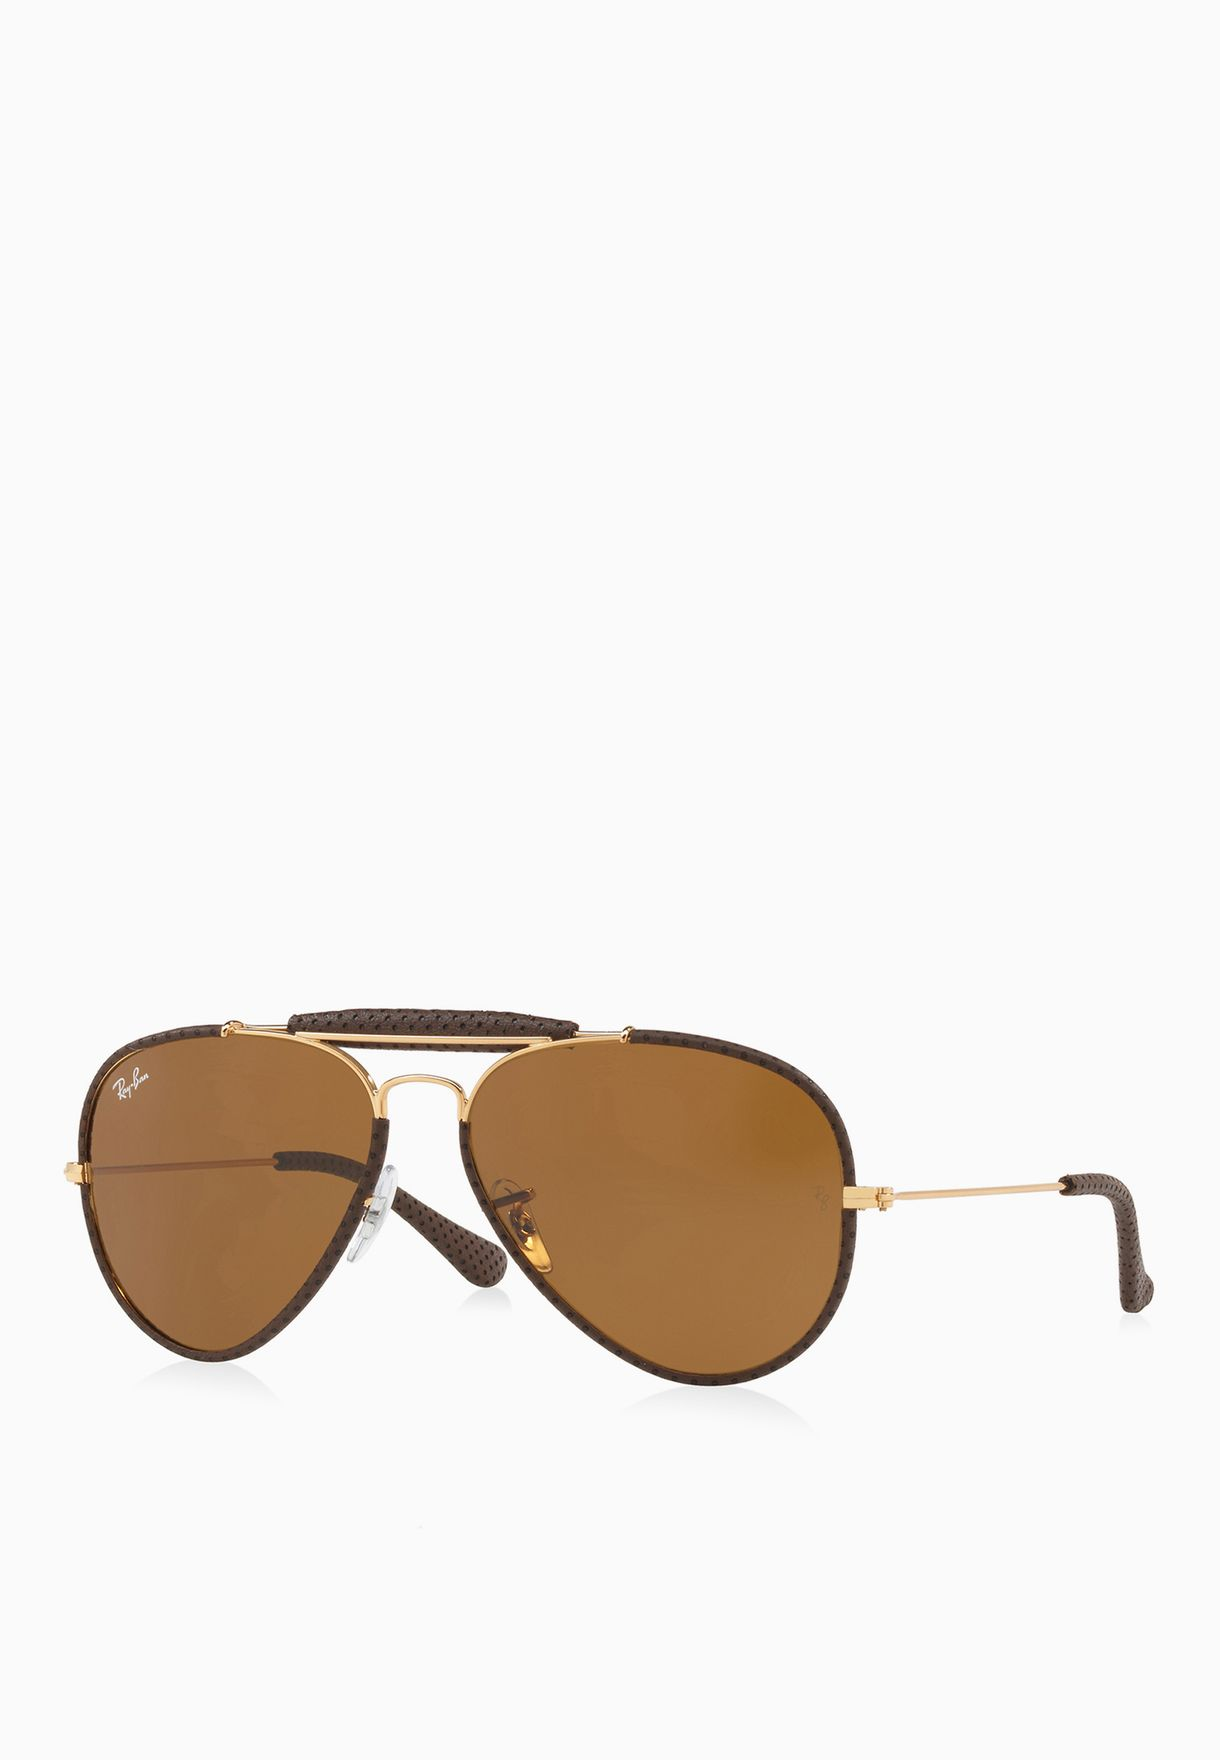 734beee272 Shop Ray-Ban browns Outdoorsman Craft Sunglasses 8053672790290 for ...